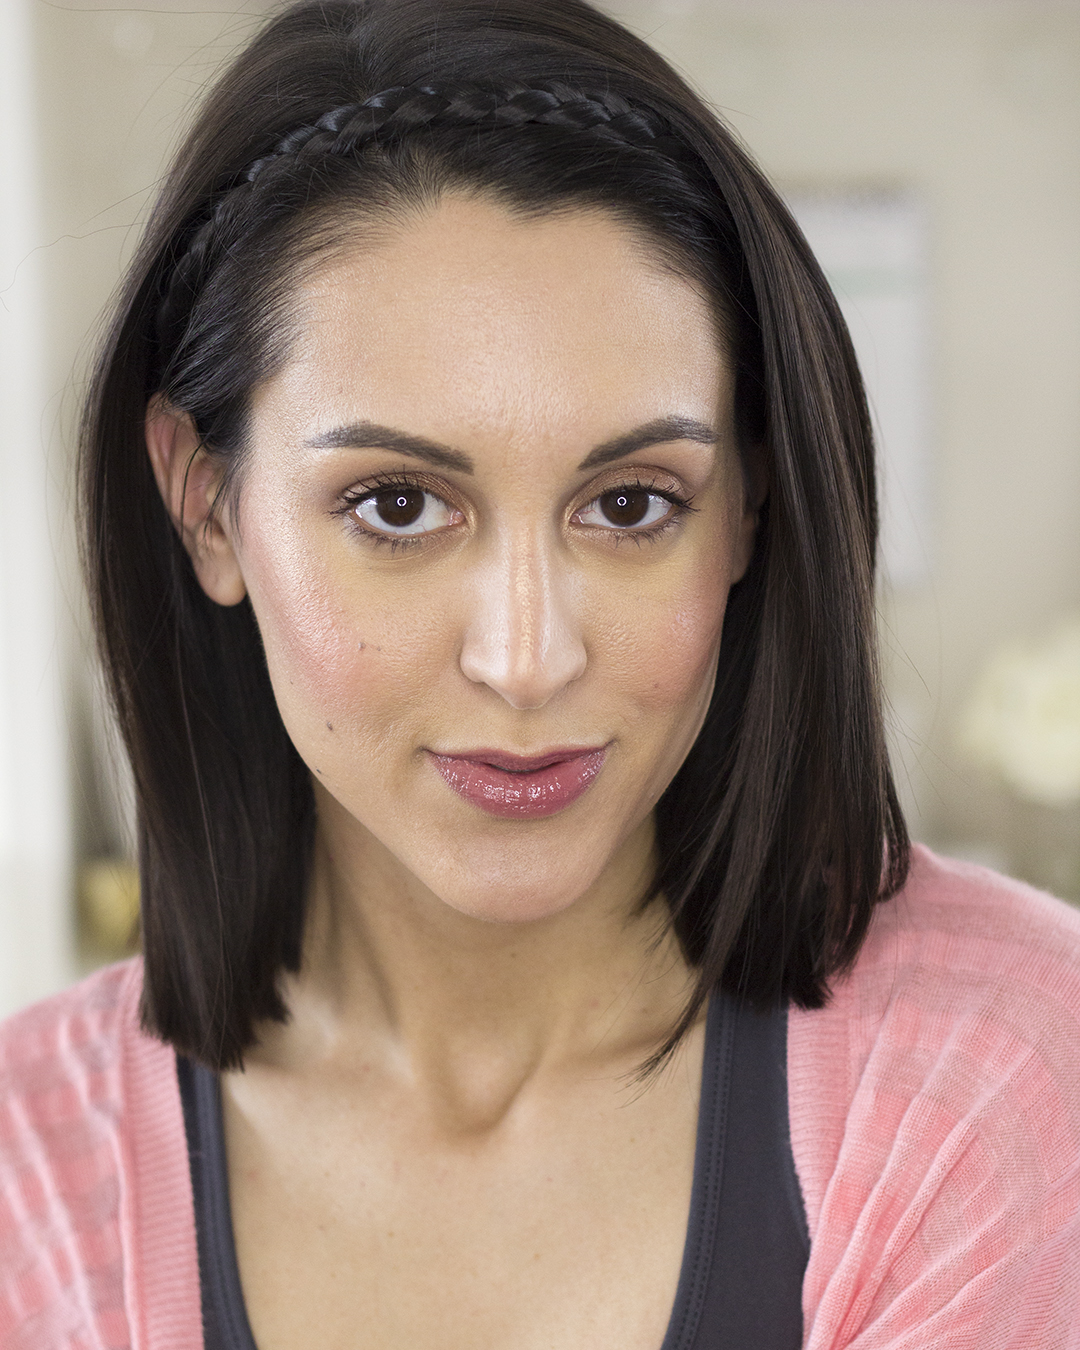 Make Up For Ever Ultra HD Perfector Makeup Look